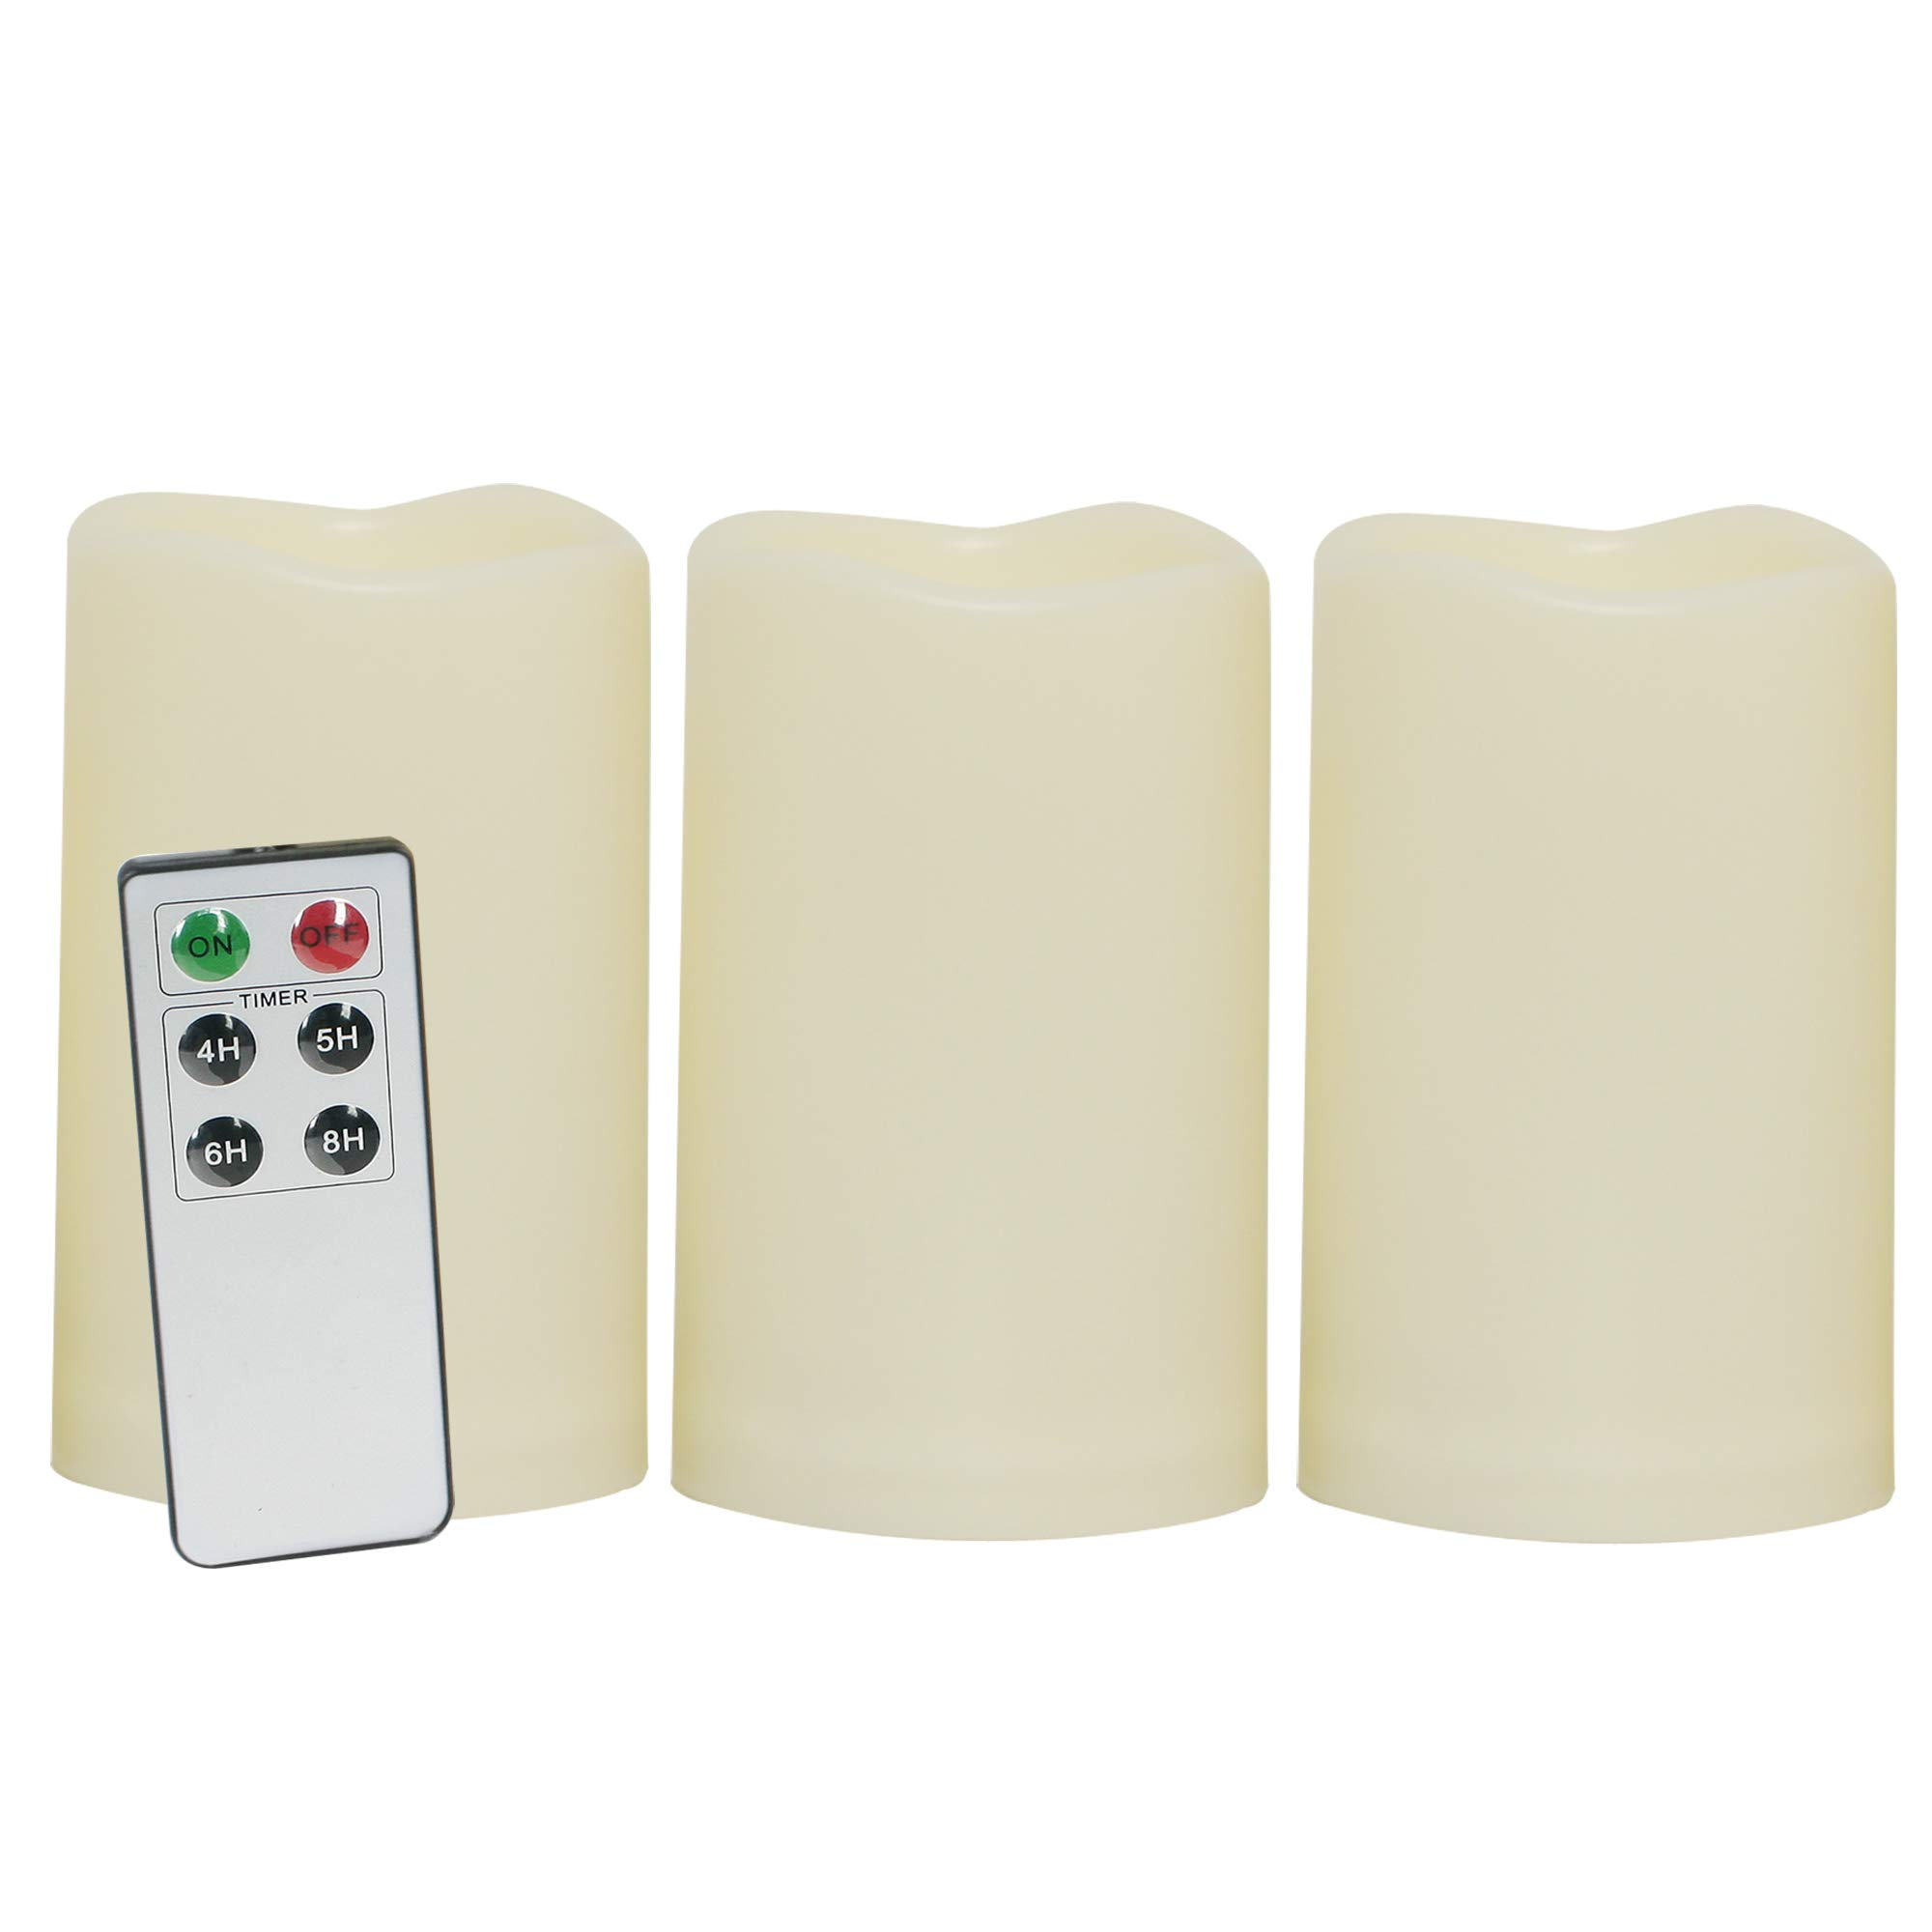 "Waterproof Outdoor Flameless LED Candles - with Remote and Timer Realistic Flickering Battery Operated Powered Electric Electronic Plastic Resin Pillar Candles by Qidea 3-Pack 3""x5"""